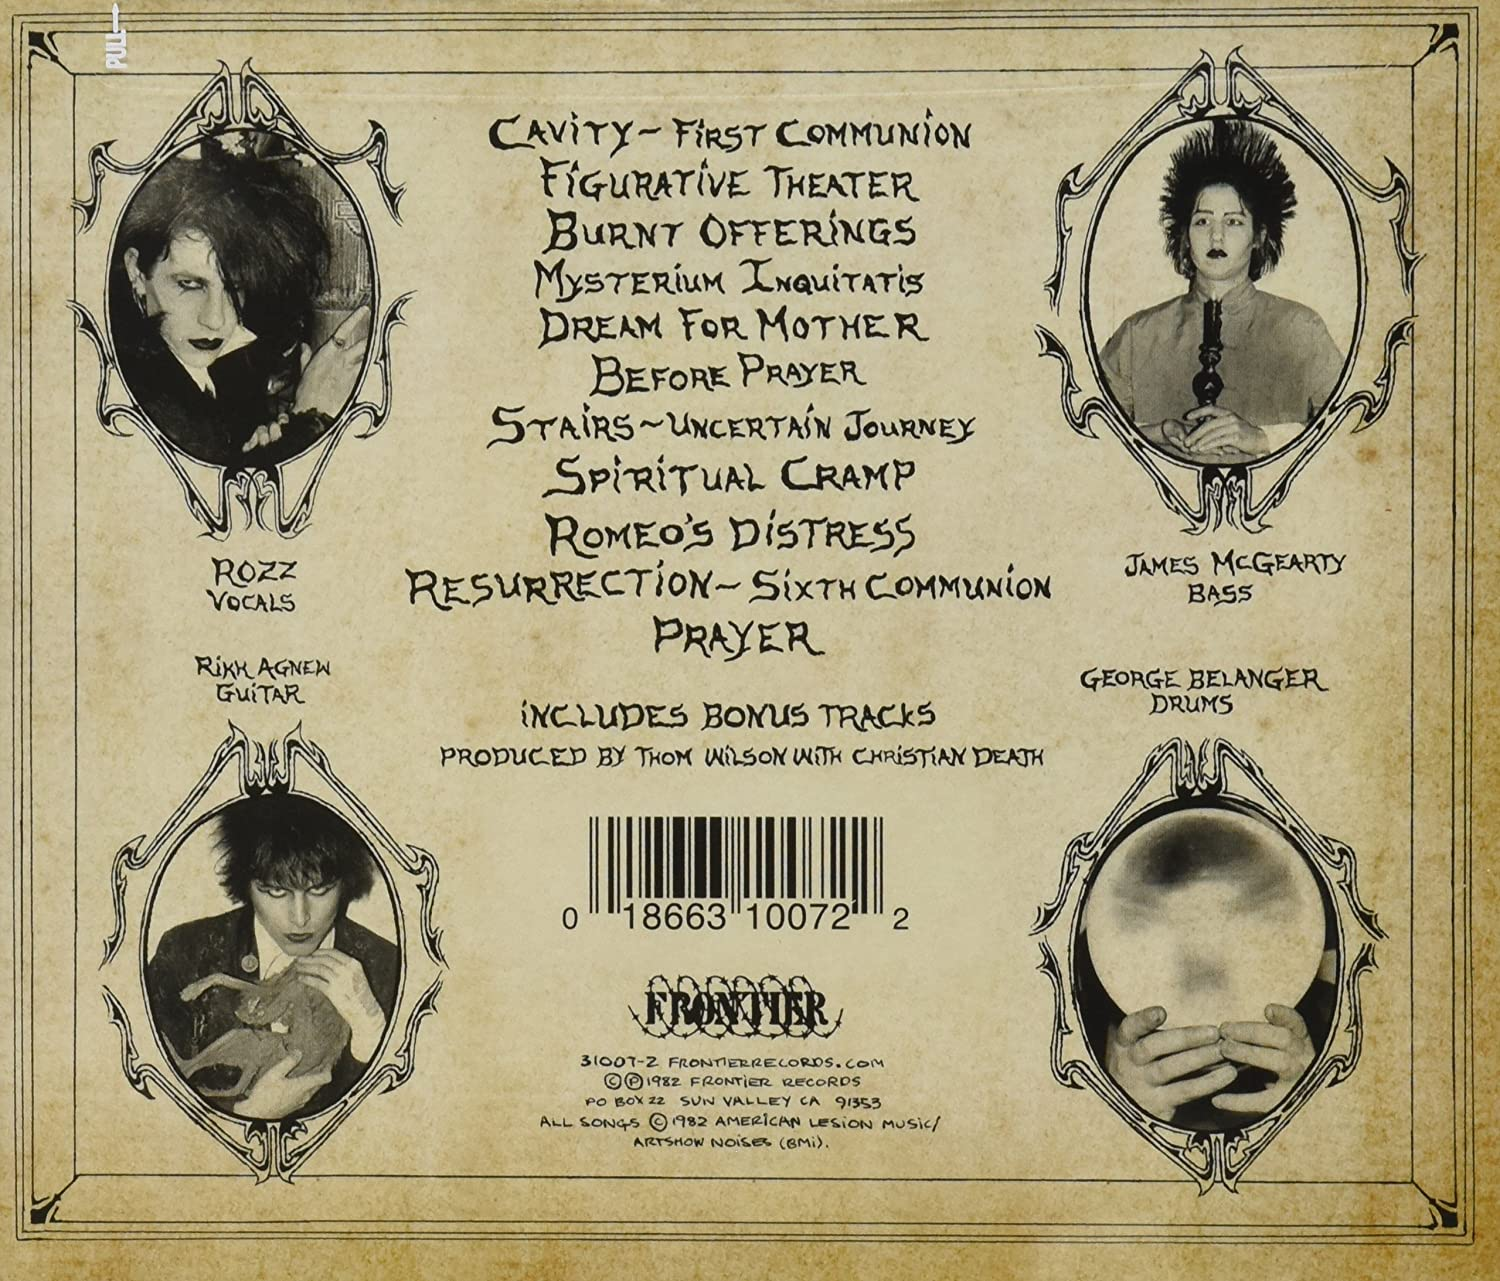 Album artwork for Christian Death's Only Theatre of Pain showing the 4 band members and the tracklisting.